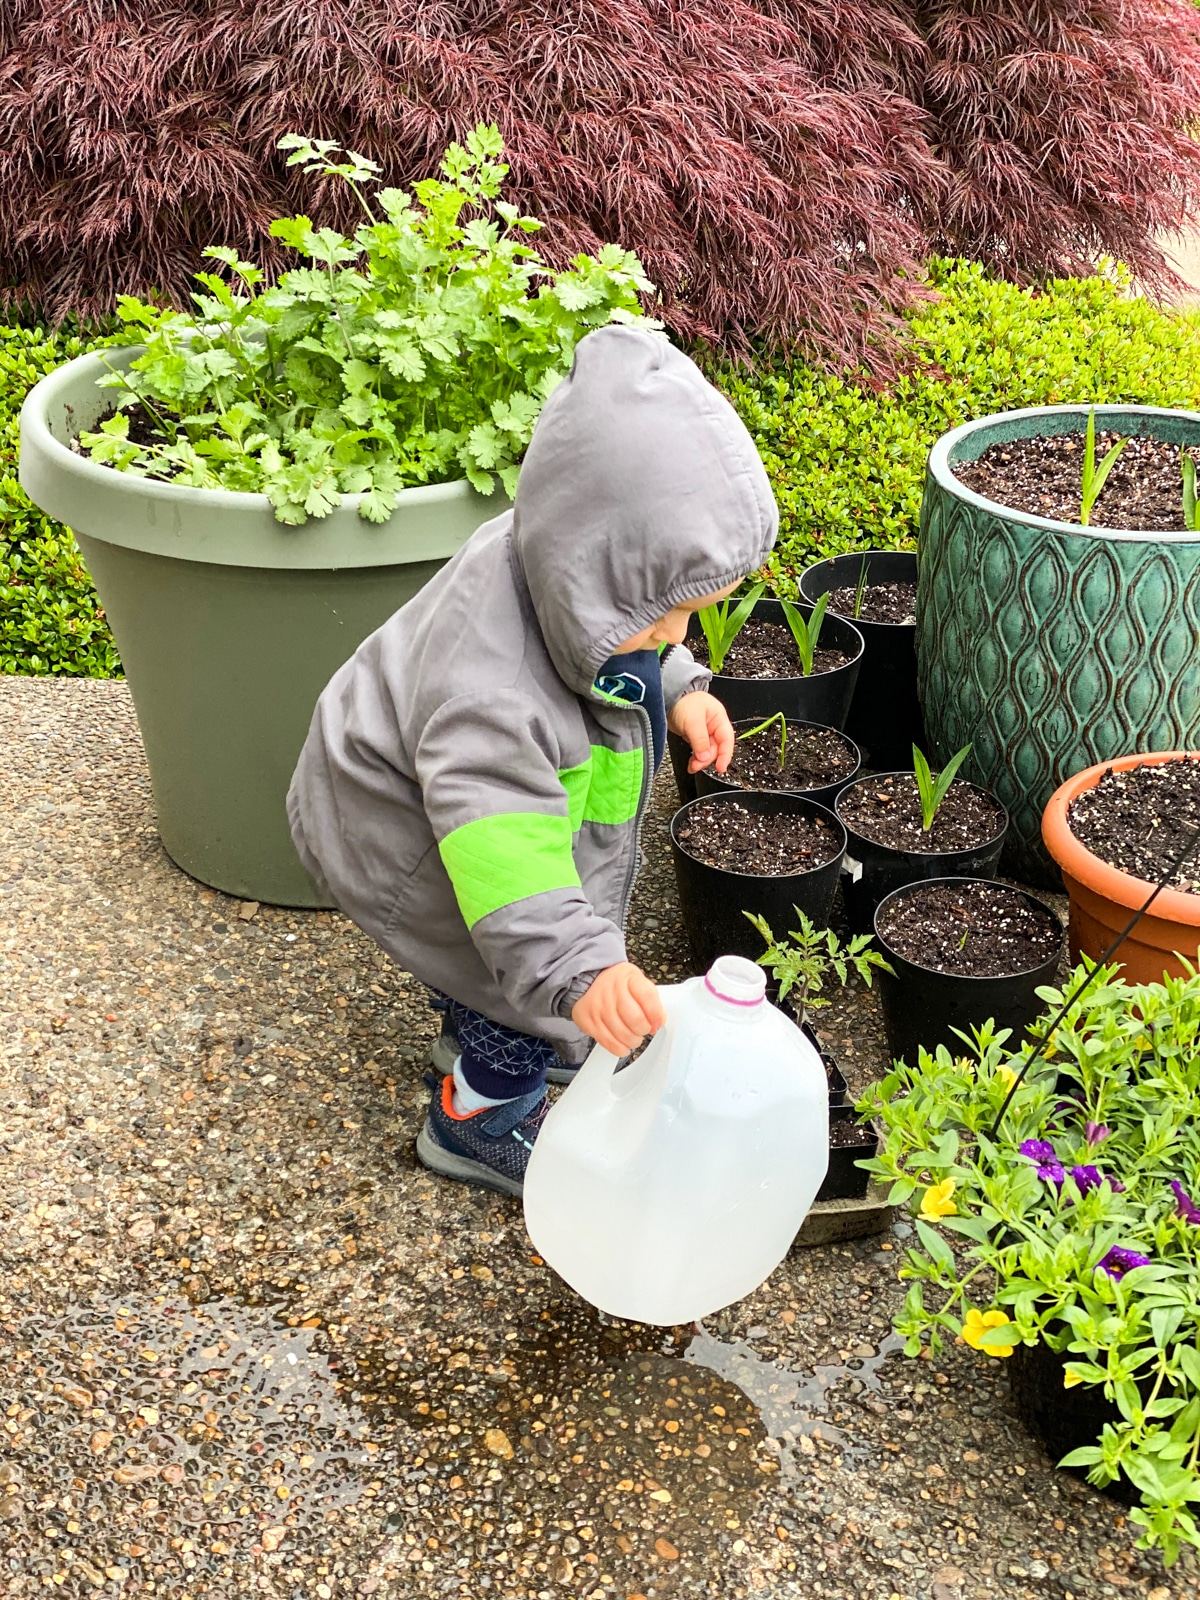 Teaching kids how to garden with herbs for cooking